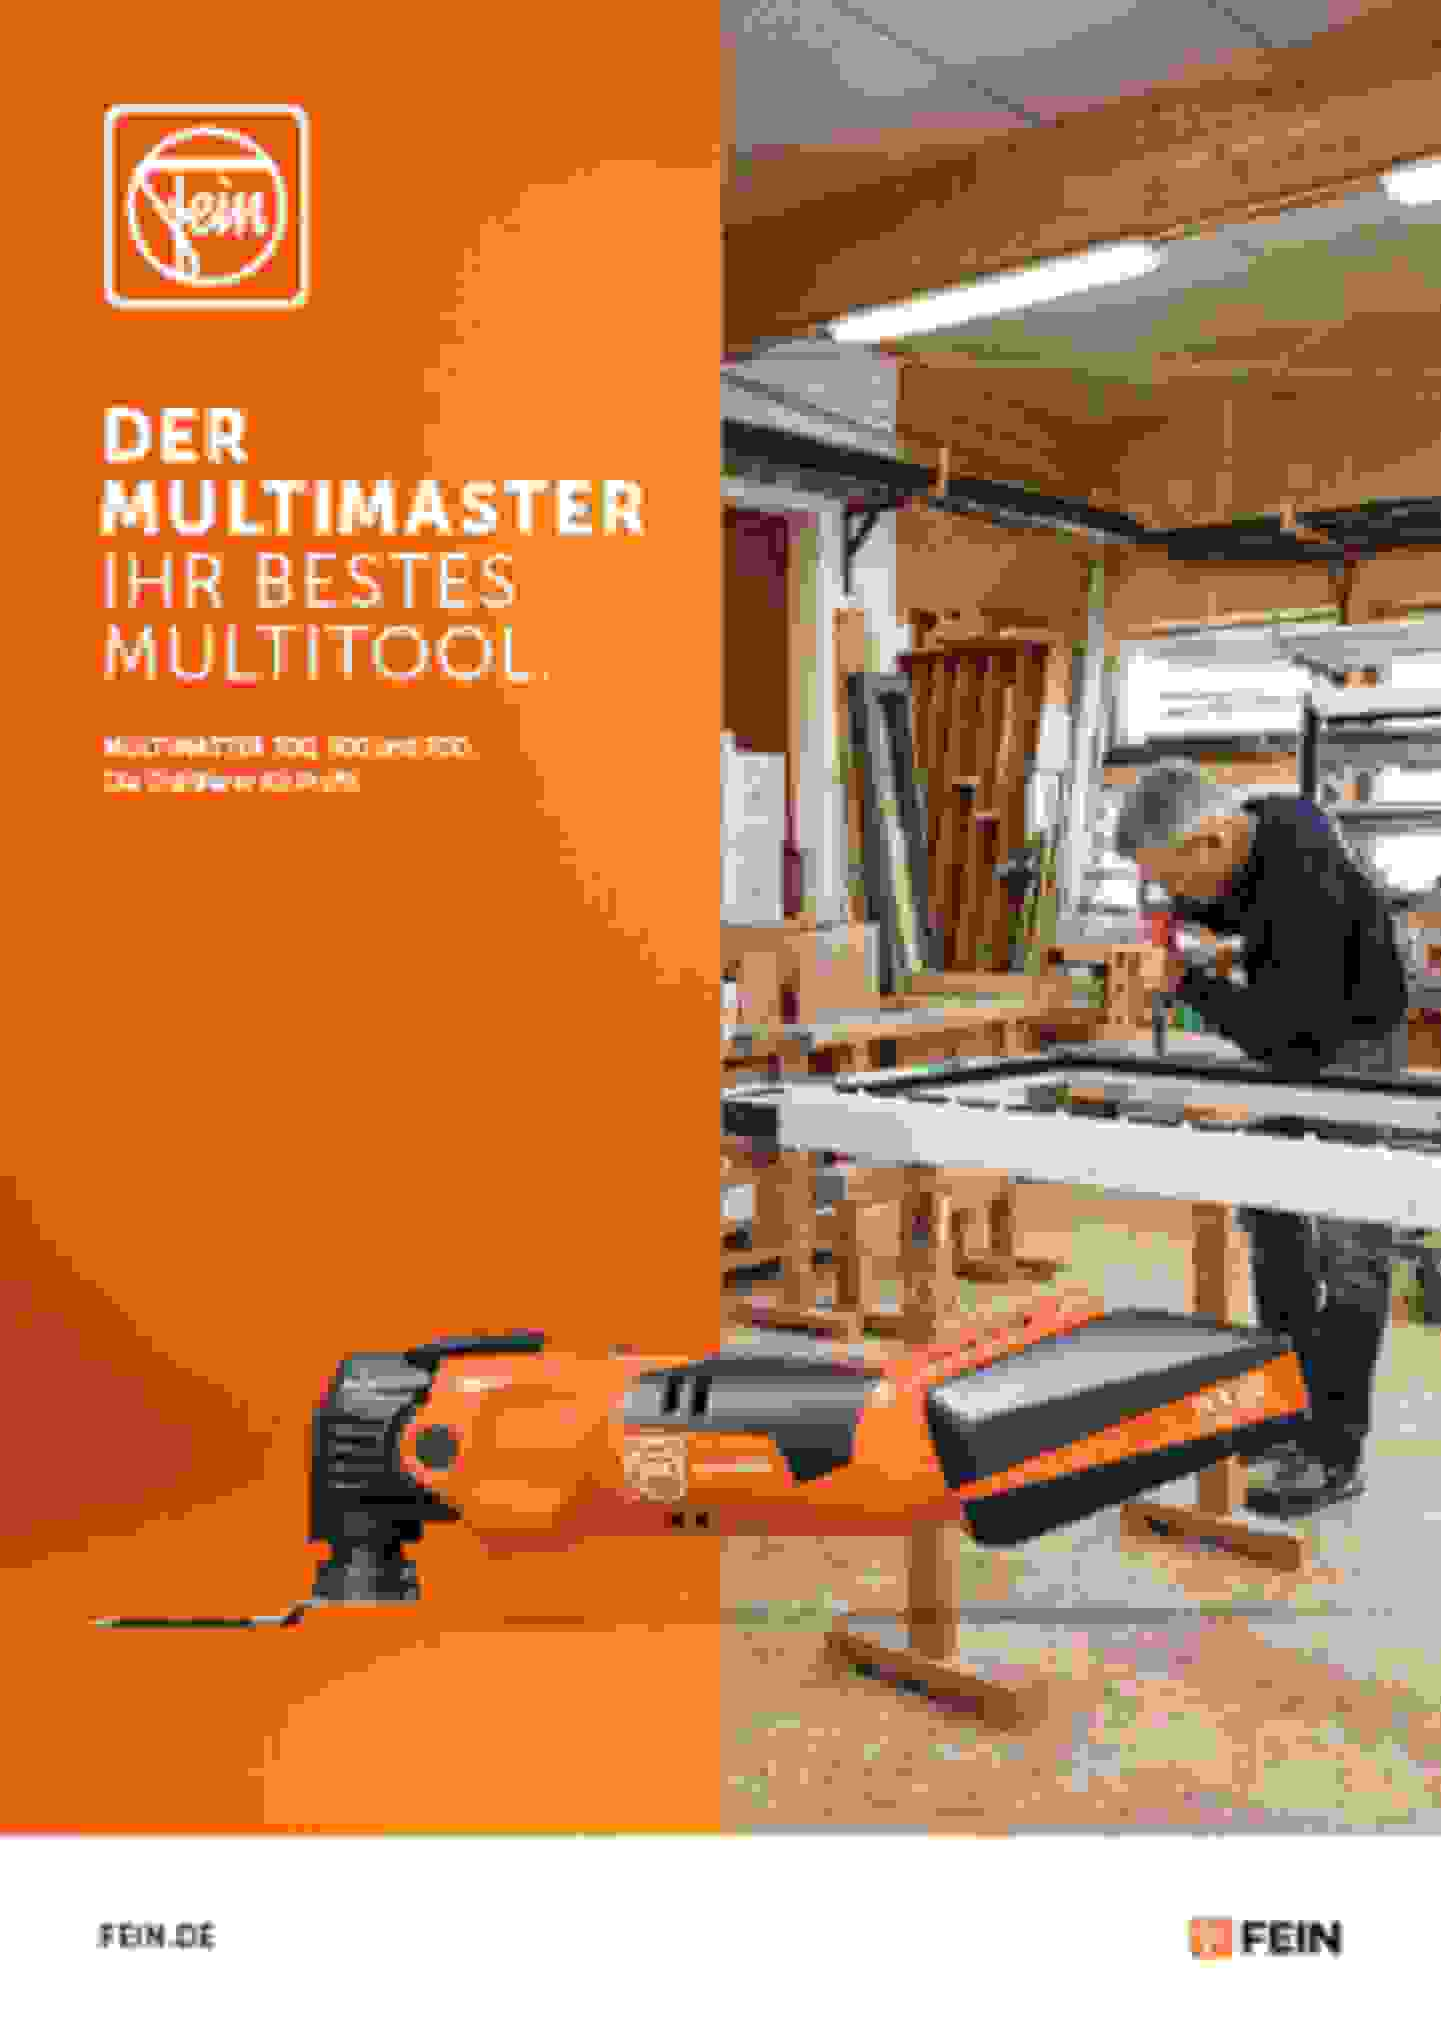 Der Multimaster – Ihr bestes Multitool